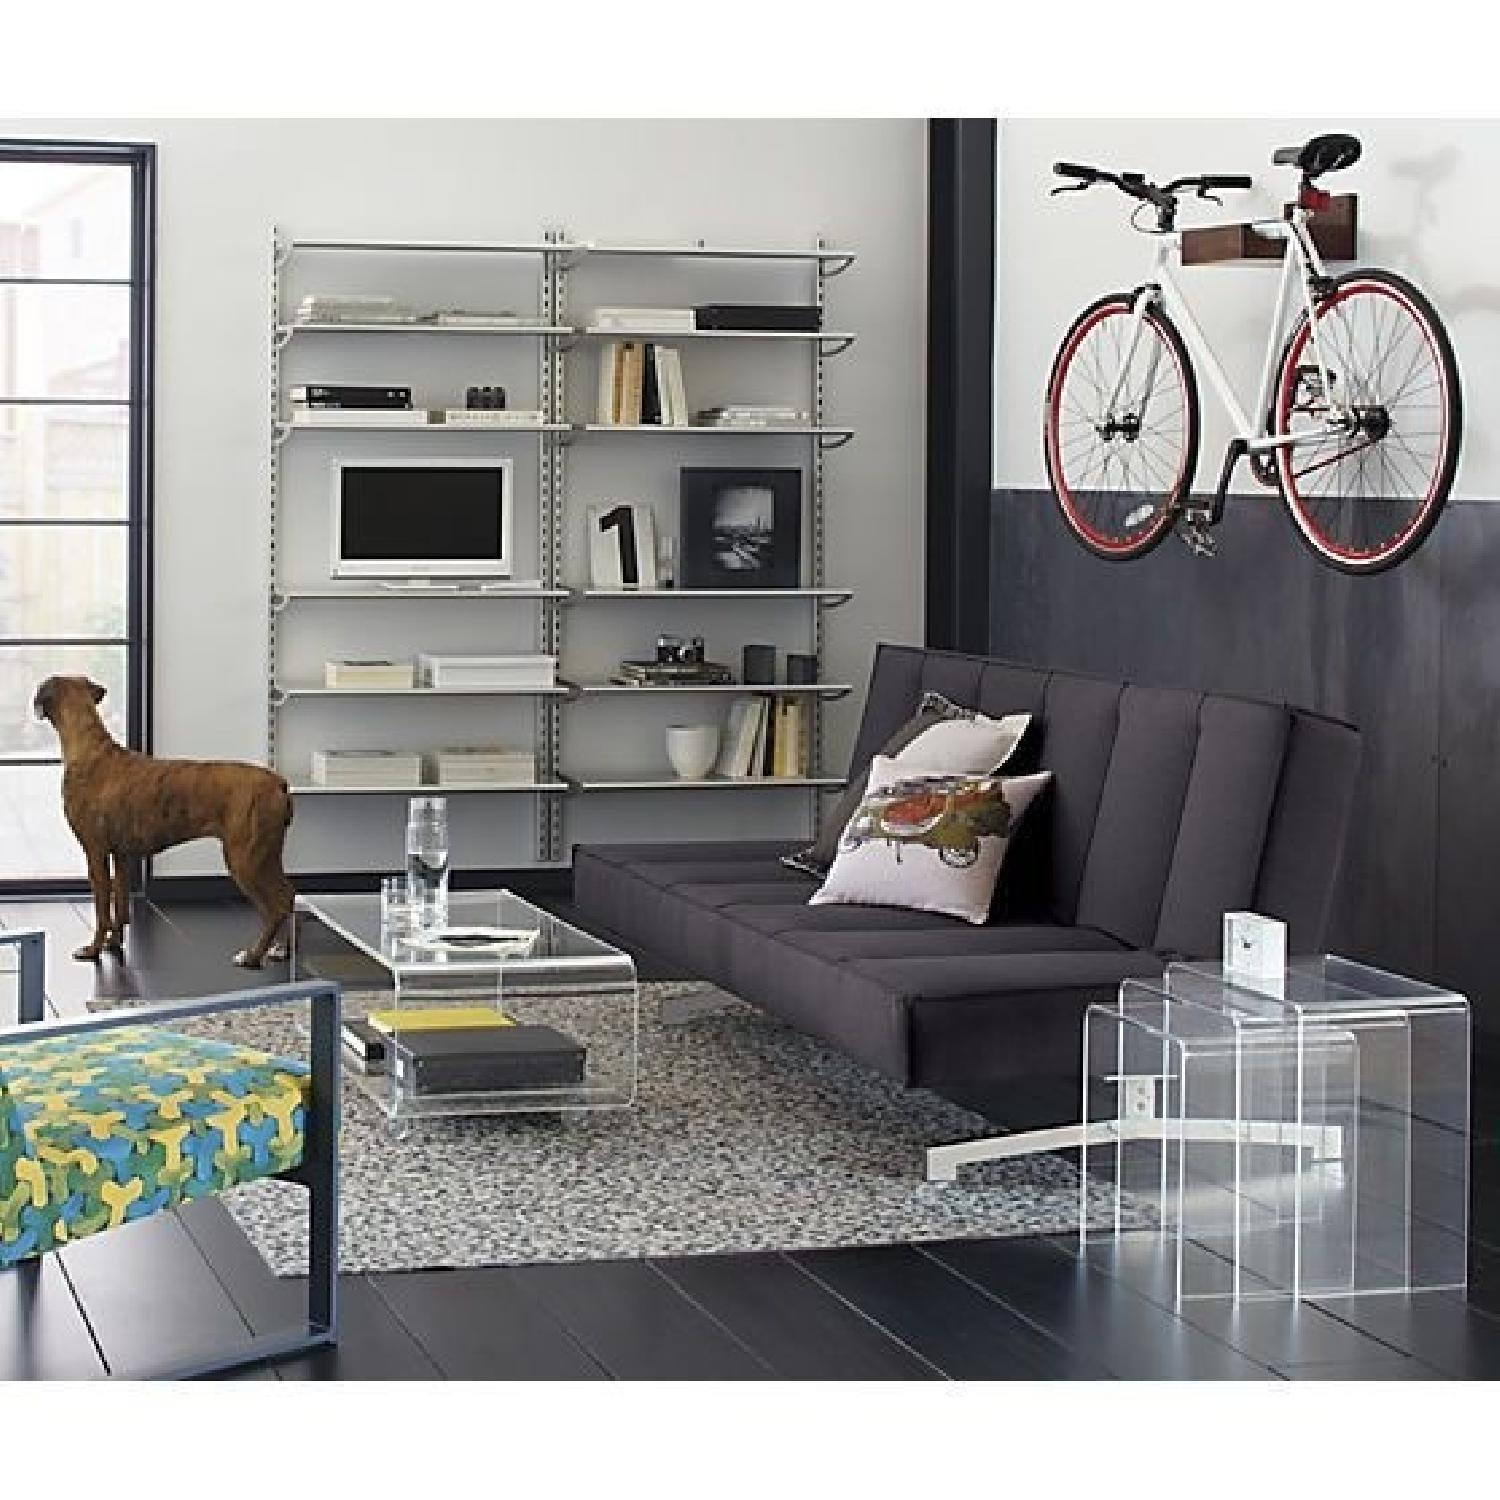 Admirable Cb2 Peekaboo Acrylic Media Console Coffee Table W Casters Unemploymentrelief Wooden Chair Designs For Living Room Unemploymentrelieforg